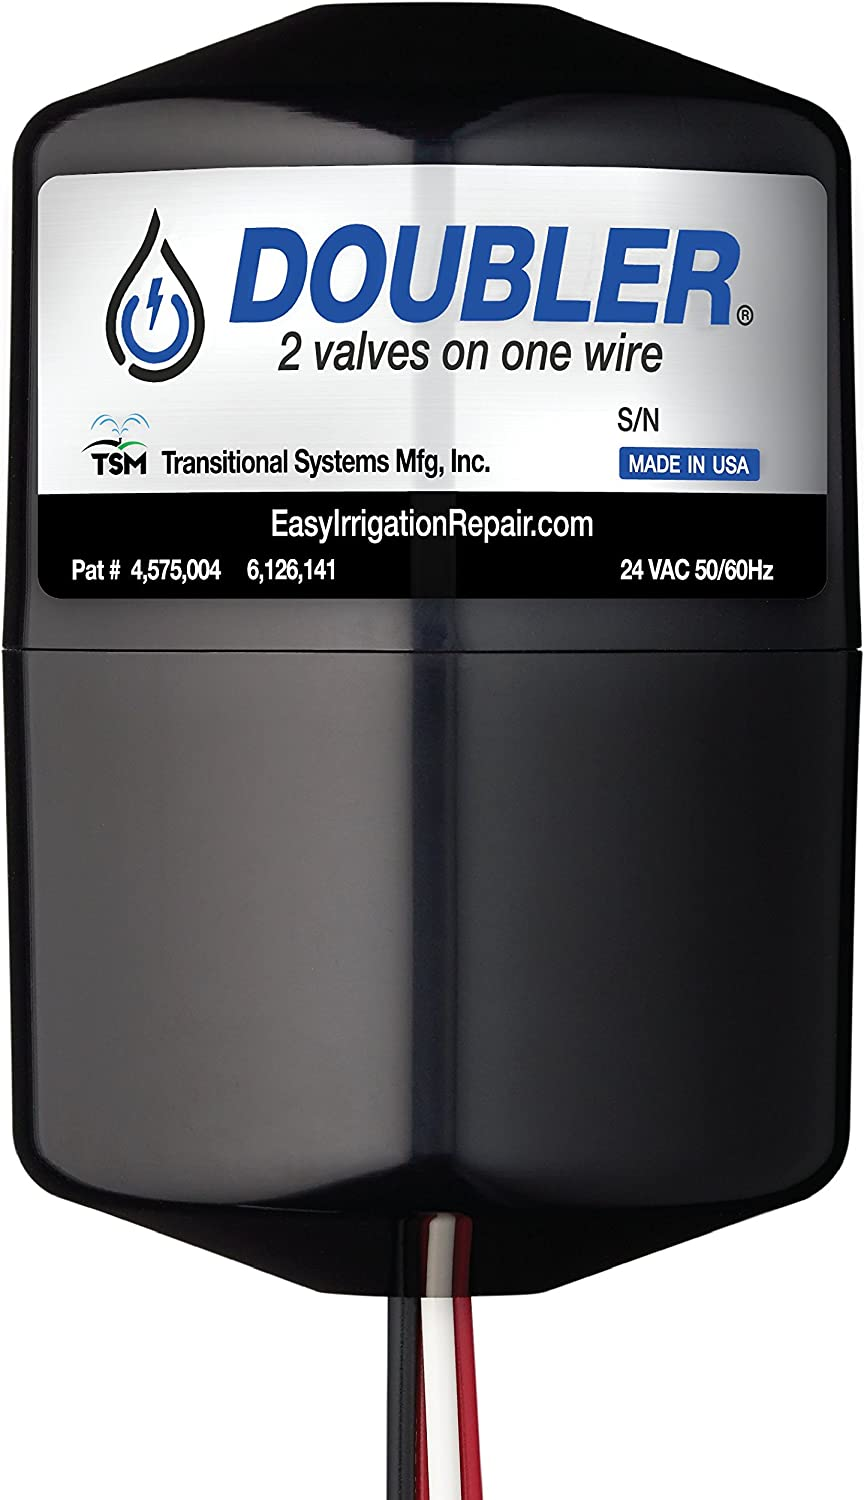 DOUBLER – 2 Valves on One Wire Expand or Repair Your Irrigation System with Ease